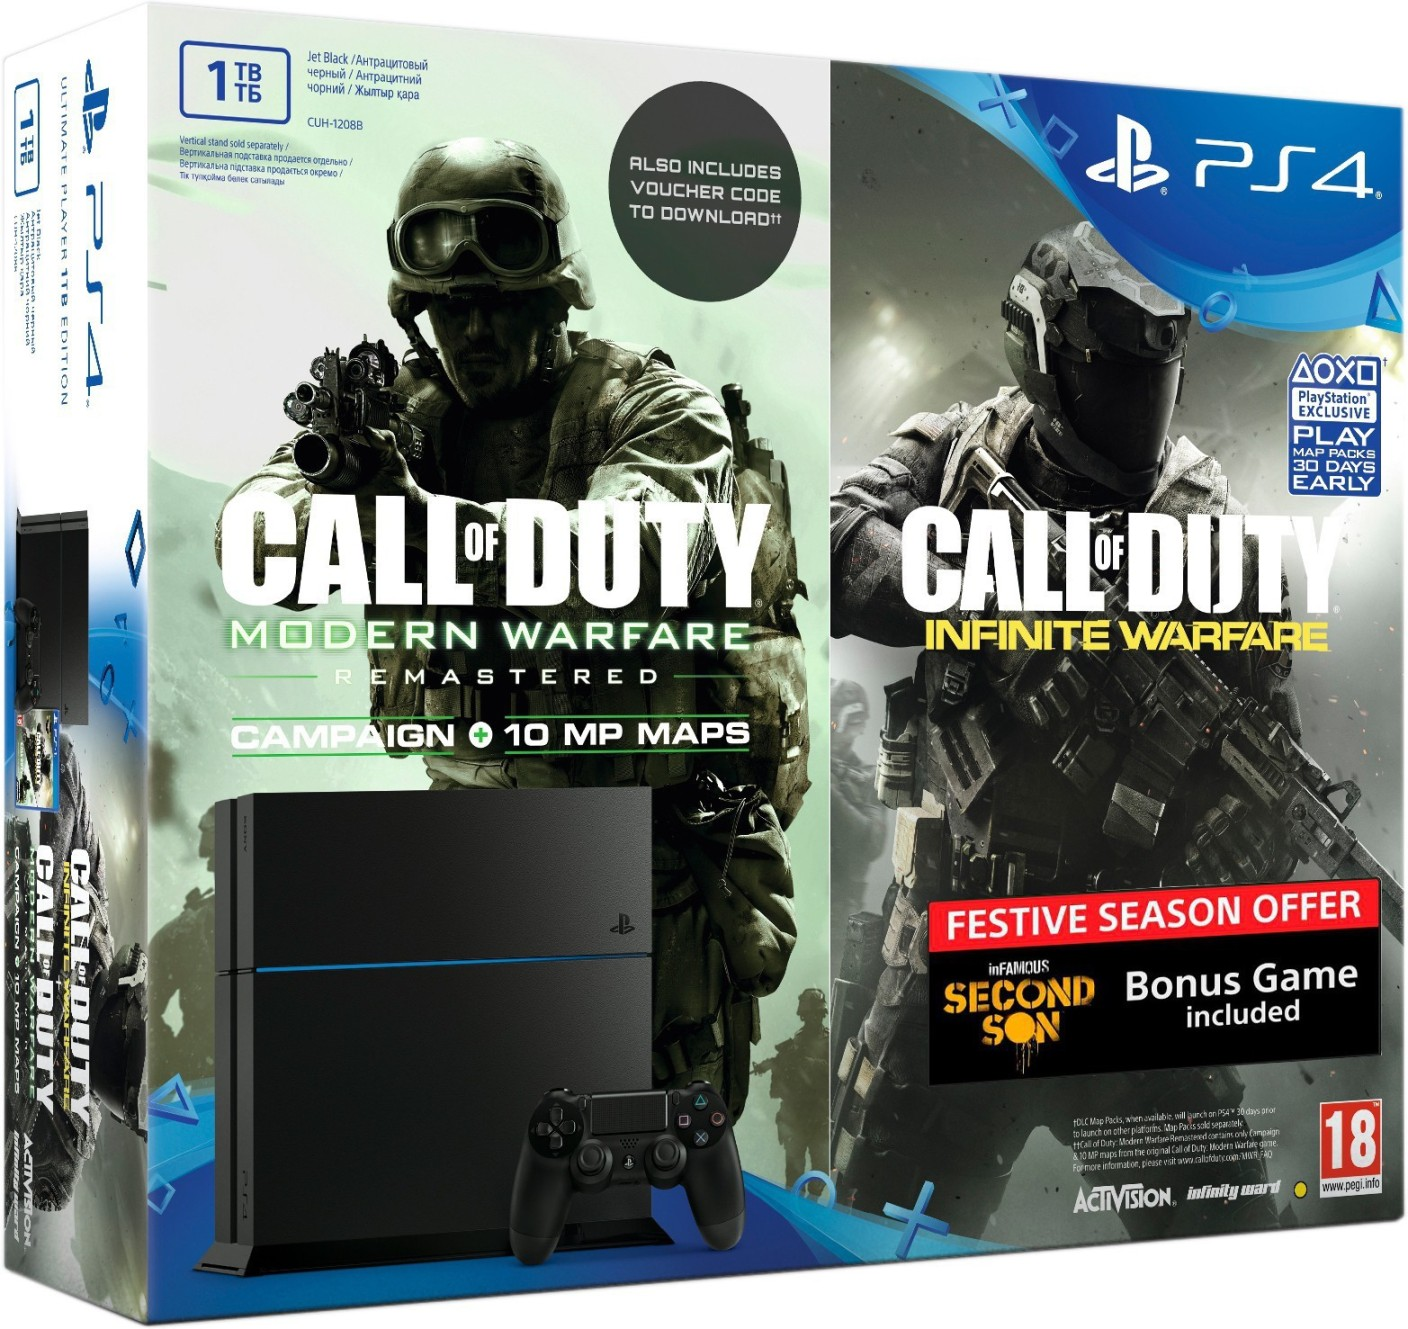 how to buy cod 4 remastered without infinite warfare